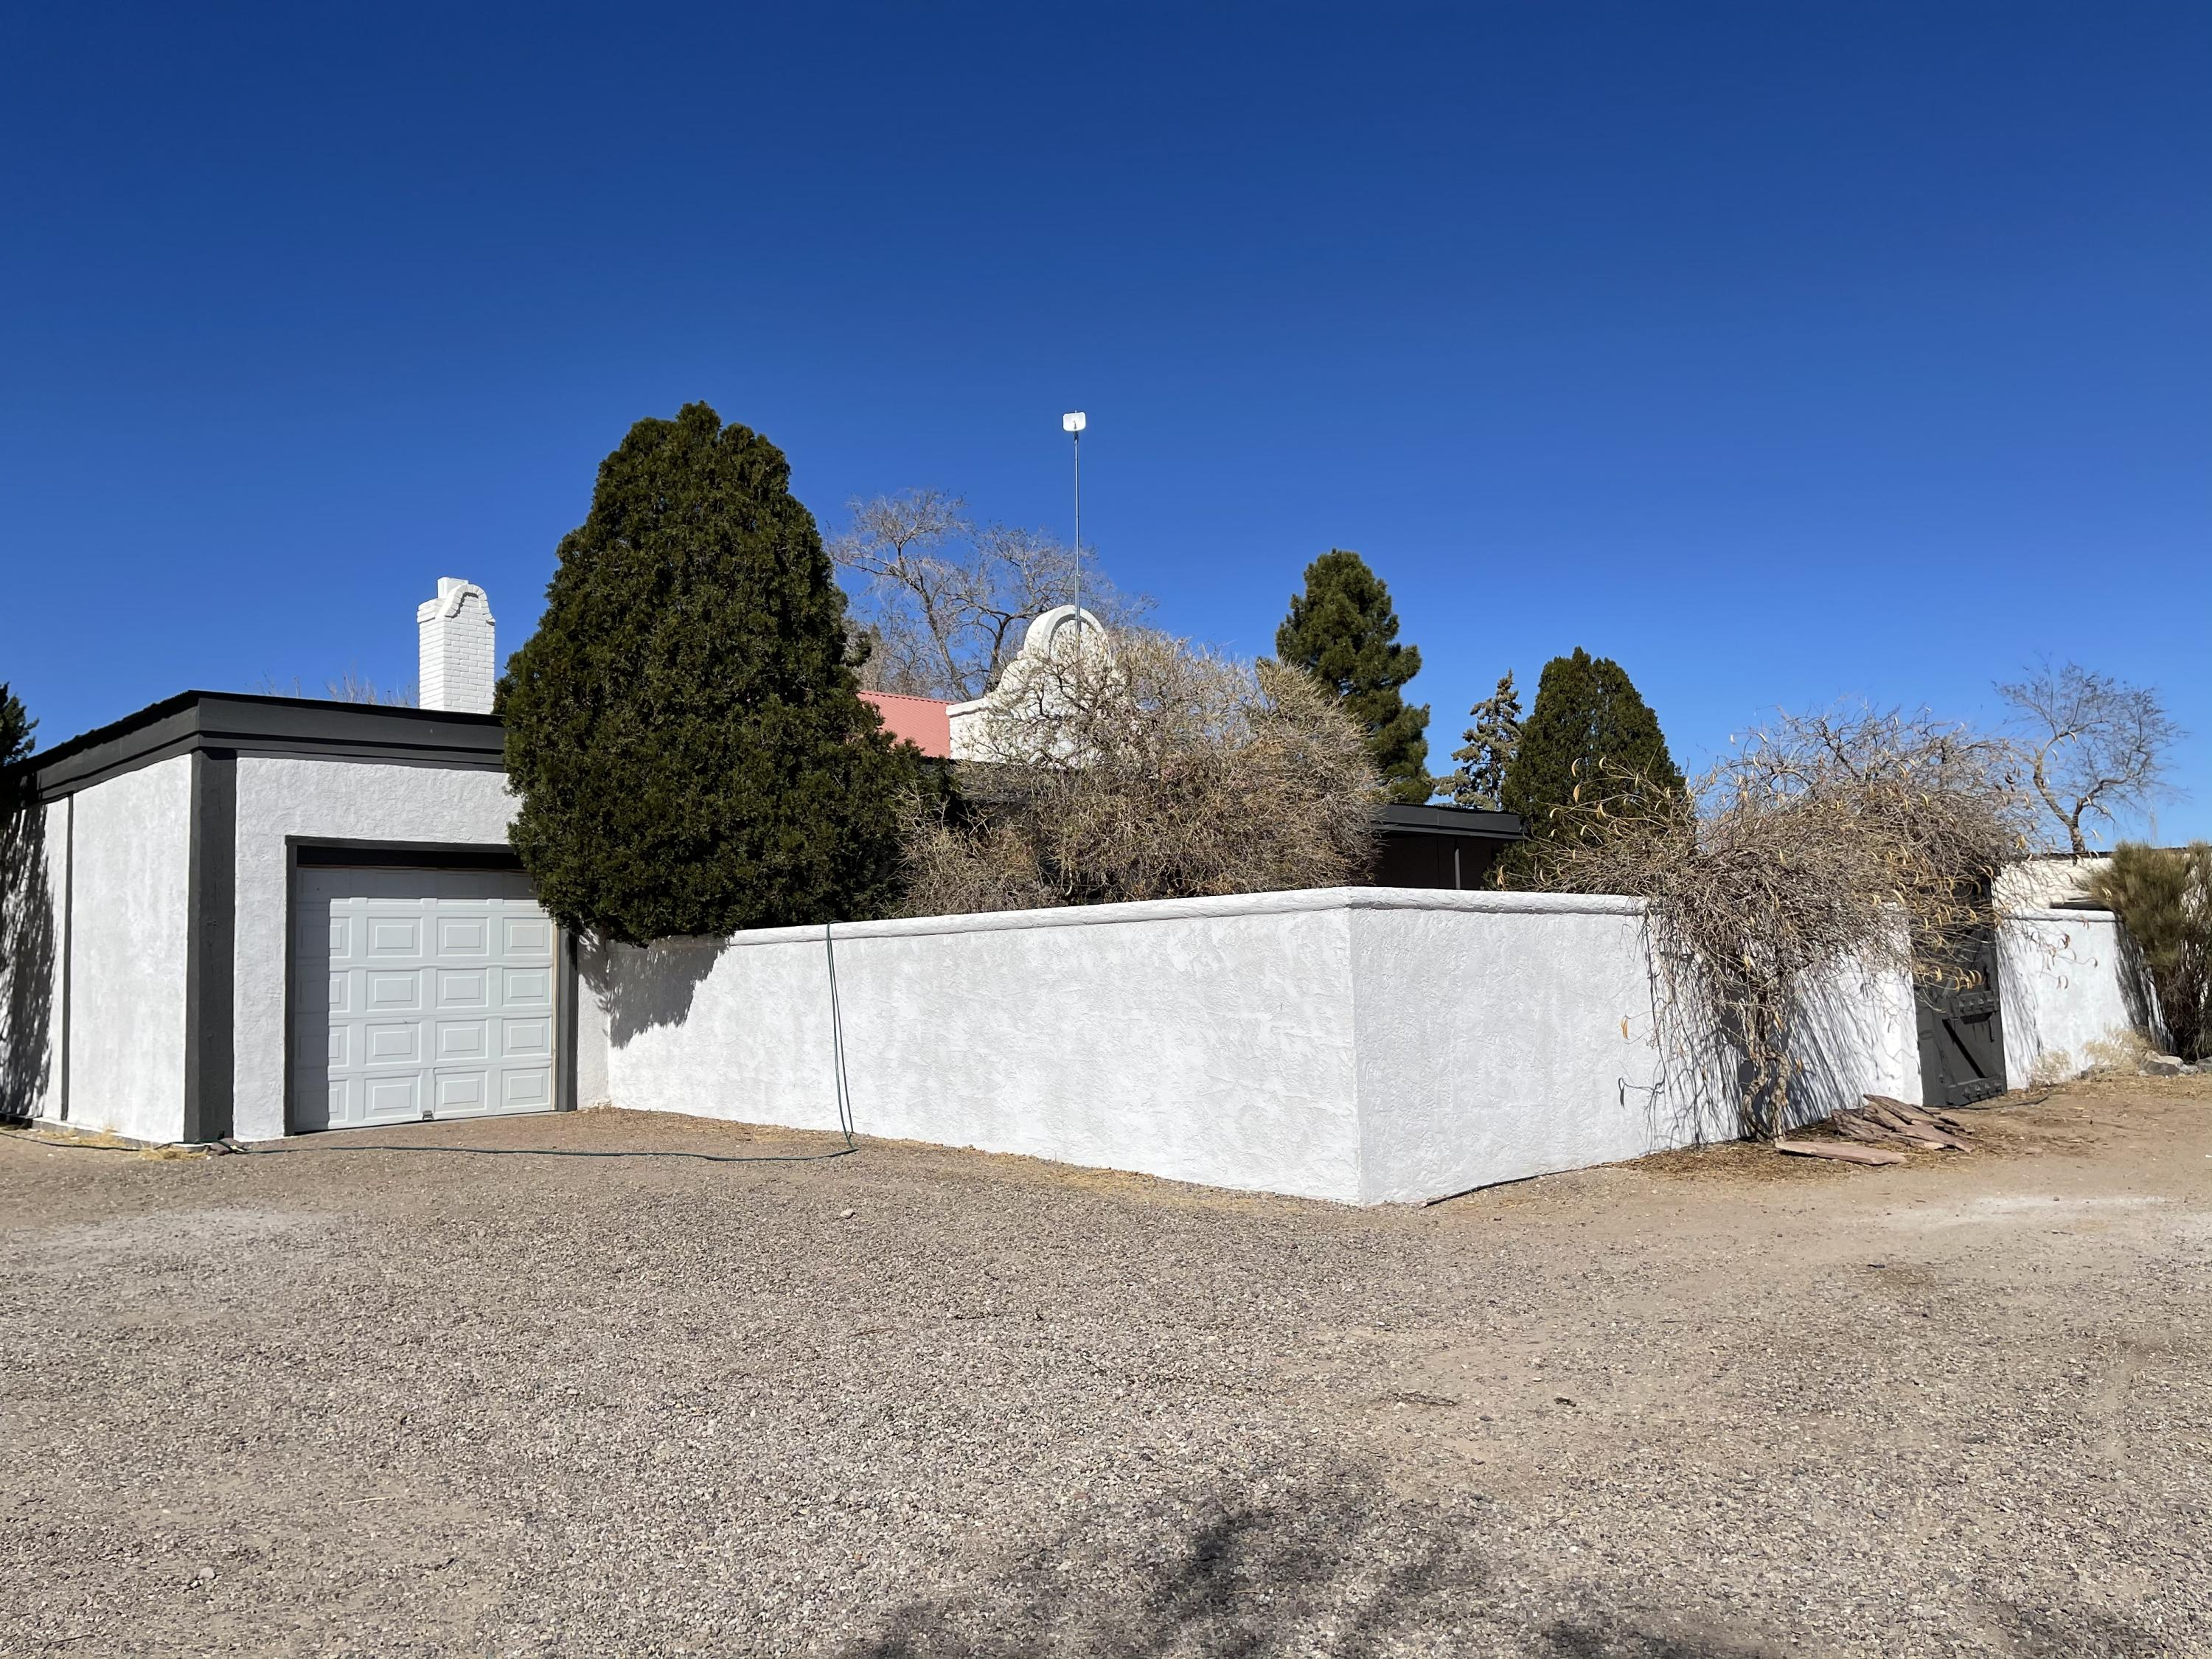 Home at last! Come & own a piece of New Mexico history. This updated, well maintained home was once a school house for Luis Lopez. It was remolded in 2020 to accommodate  for a single residence.  3 bedroom, 2 baths, dining area. Carpet, tile & laminate flooring.  Built in book cases. Loft & kiva fireplace  in bedroom. 14 foot ceilings, 10 foot doors & see through fire place. Wood pellet stove for efficient heating.  Large, walled courtyard with a covered porch. Attached one car garage with plenty of storage.  1279 SF. guest house has been remolded. Open floor plan. 2 bedroom, 1 bath & utility room.  Metal garage/shop with RV storage. Enclosed carport & a set of pins for animals. Just an hour from Albuquerque & an hour from Elephant Butte Lake.  Close to Bosque Del Apache wildlife refuge.